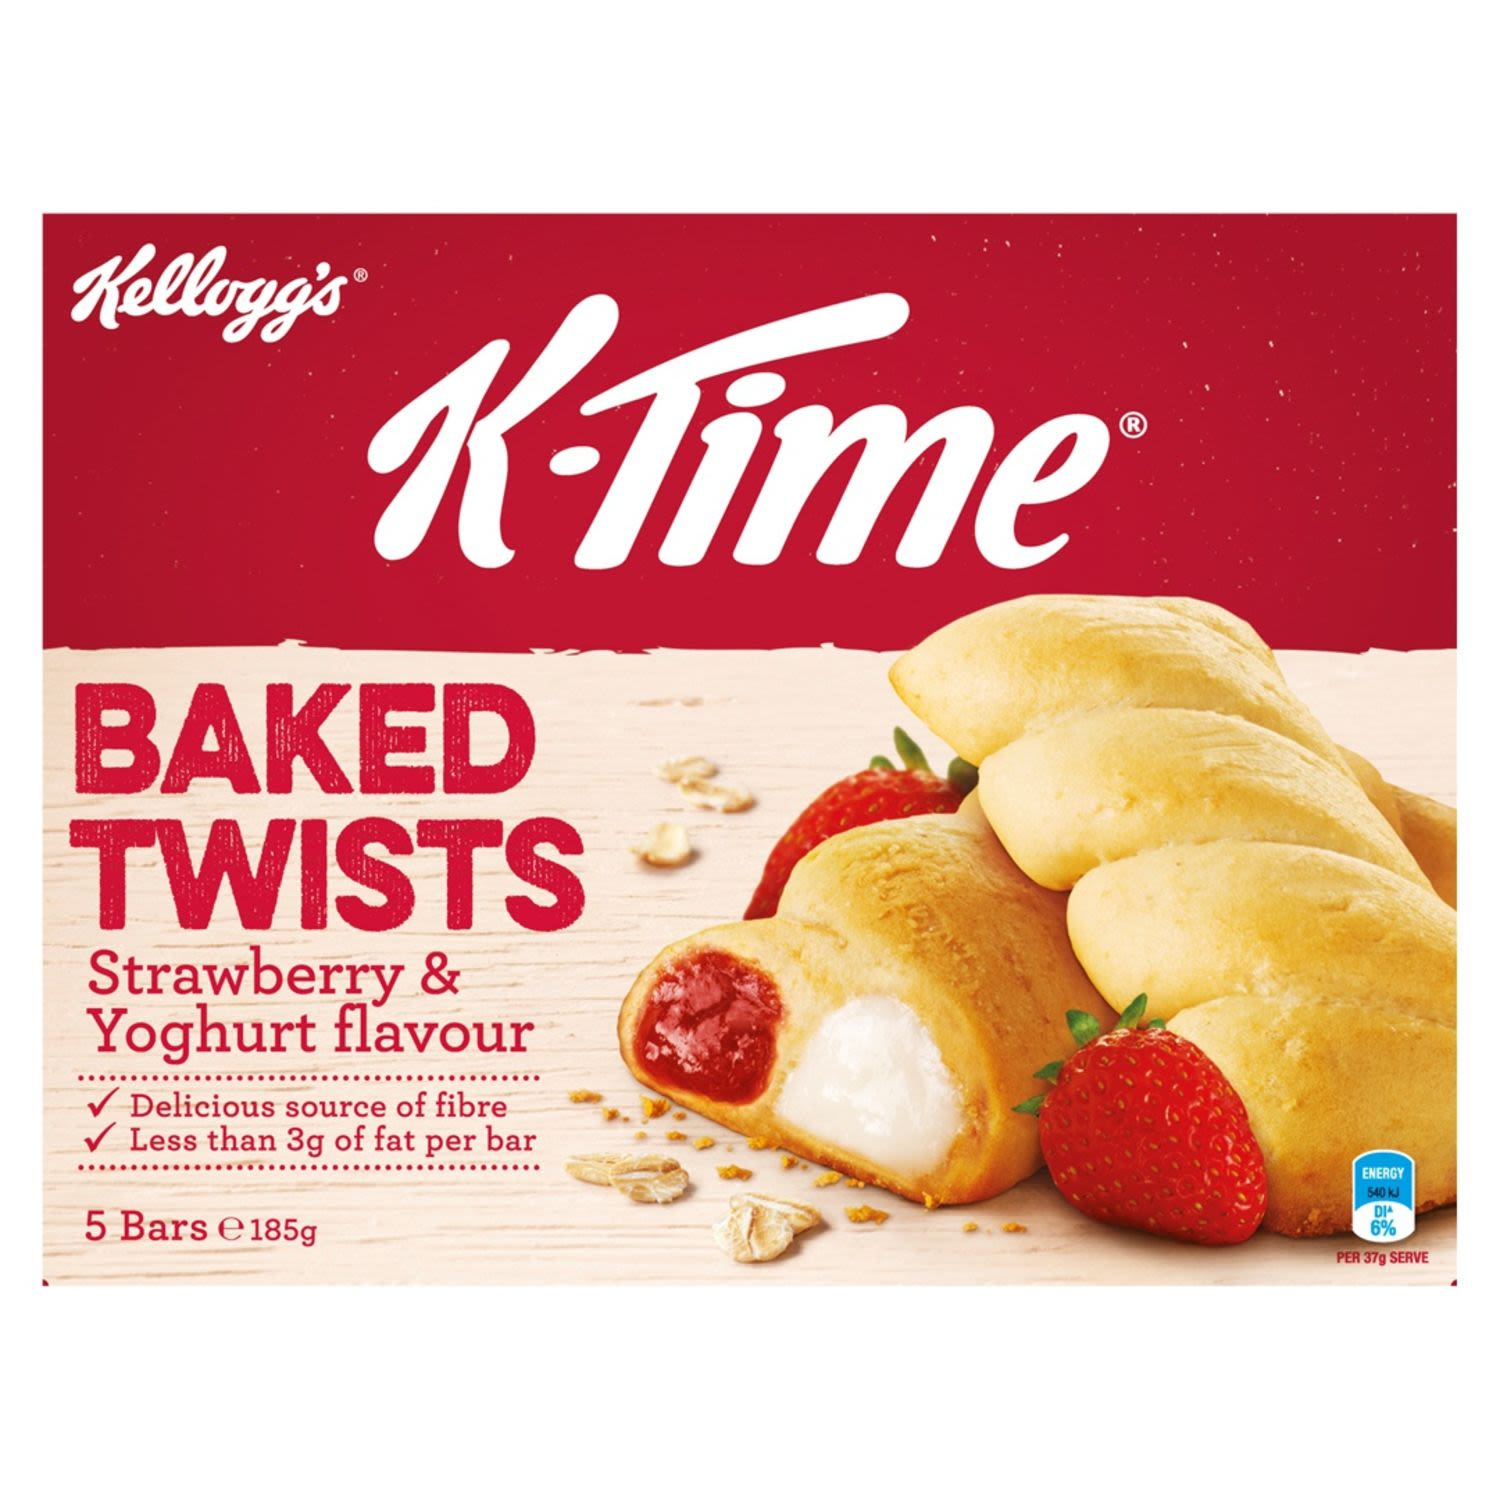 Kellogg's K-Time Baked Twists snack bars are a delightful combination of strawberry and yoghurt flavoured fillings delicately twisted throughout a softly baked wheat and oat crust.  A great snack for the morning, afternoon or any time of the day that you need a pick me up, K-Time Baked Twists are a delicious source of fibre that can be enjoyed by the whole family!